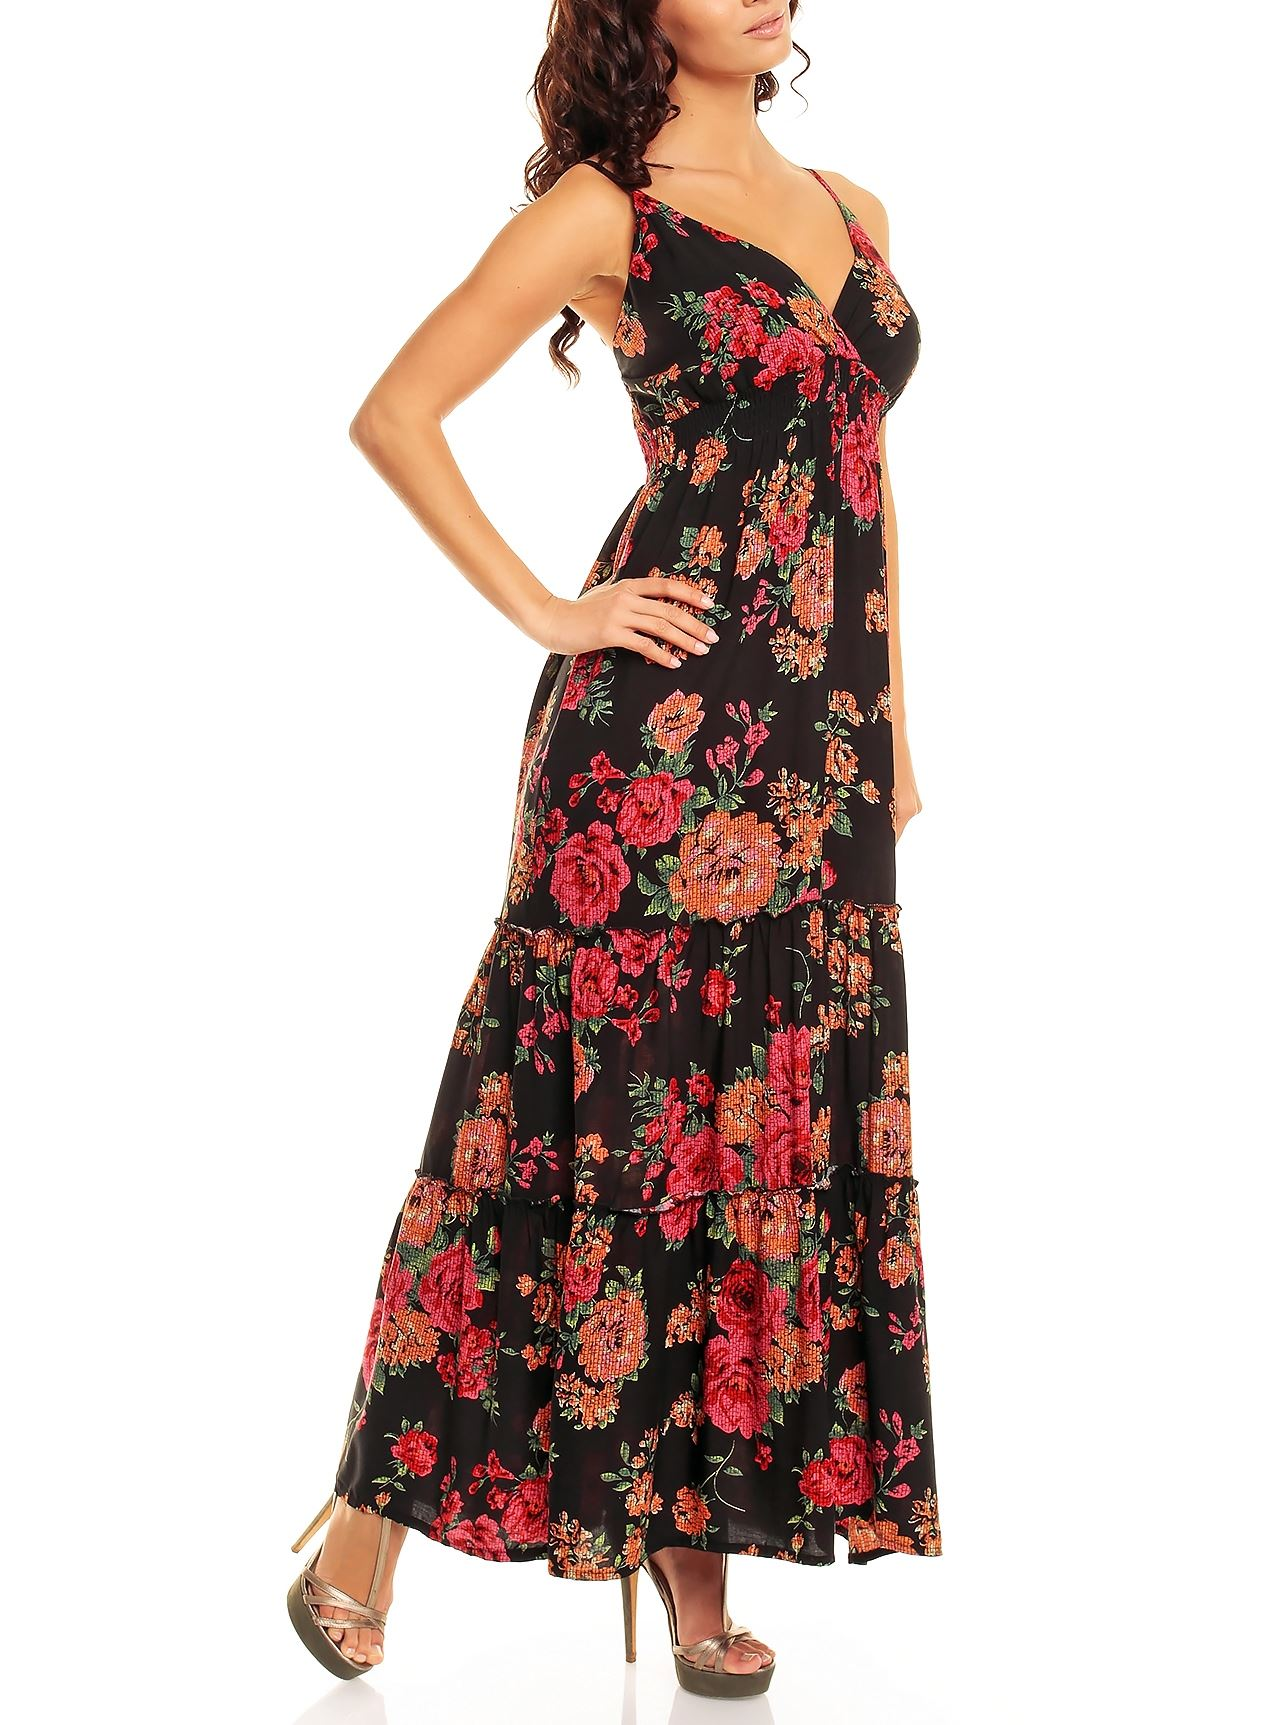 Maxi dresses for glamorous nights. Maxi dresses are one of the most versatile pieces of clothing you can own and a must for any fashion conscious woman. Gone are the days when the maxi was reserved for weddings, parties or other special occasions - the modern maxi dress is a wardrobe staple and comes in as many variations as you could wish for.